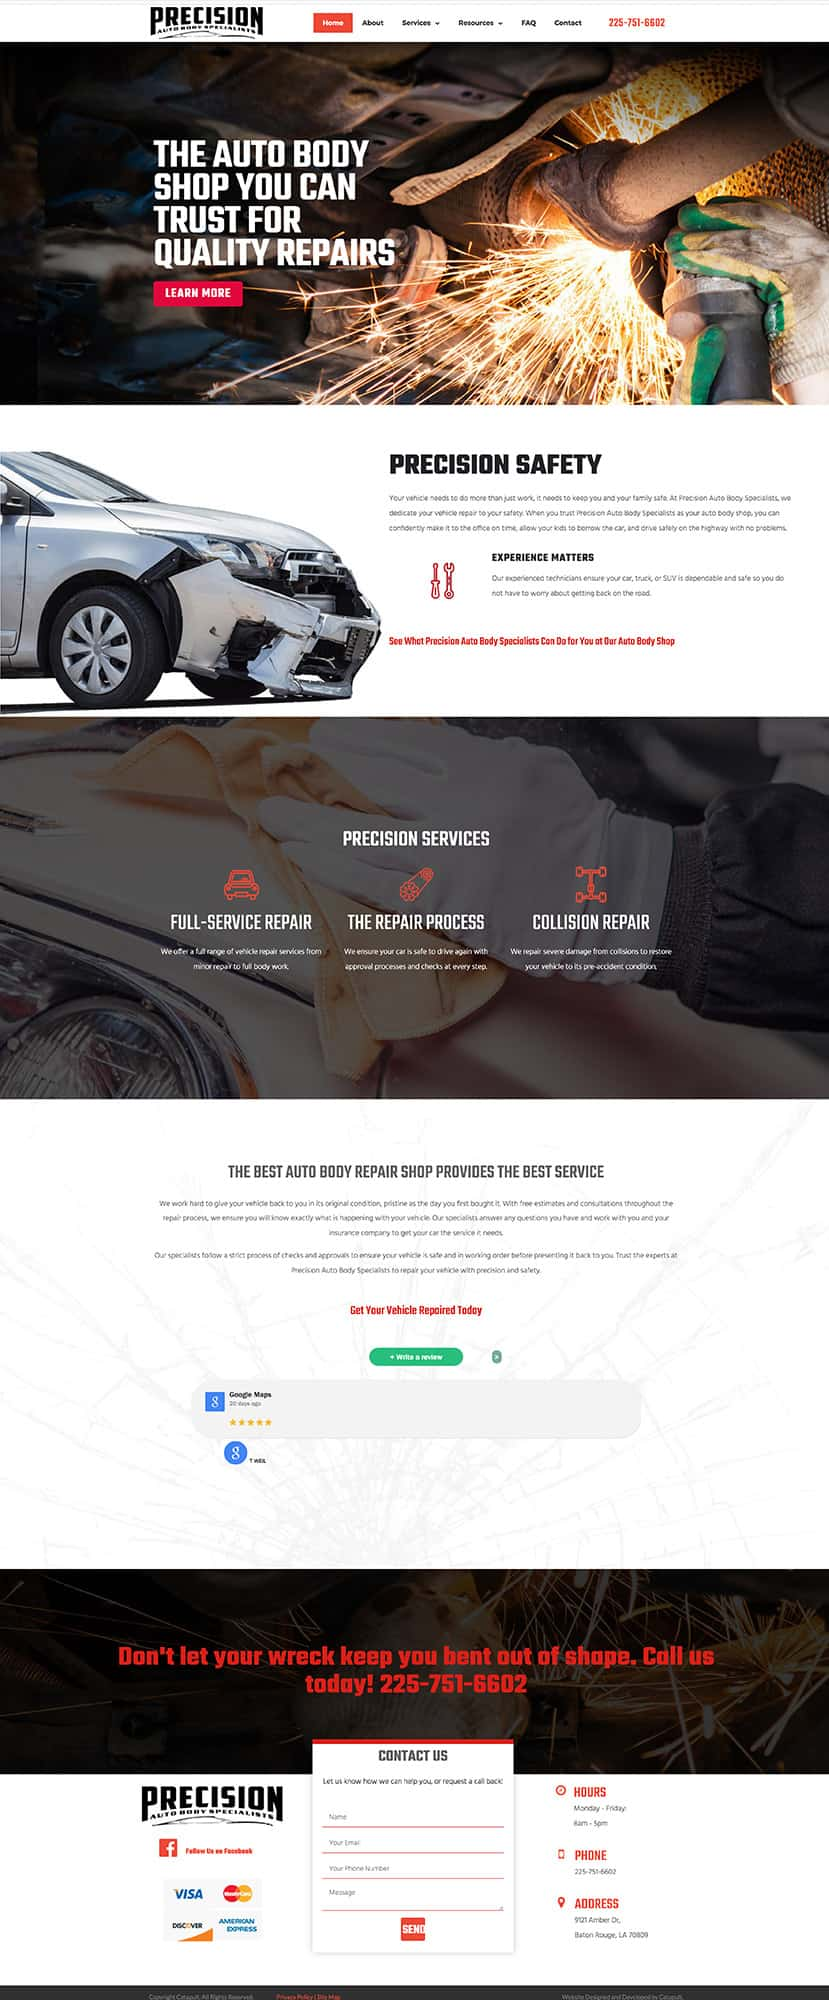 Website mockup for auto body shop